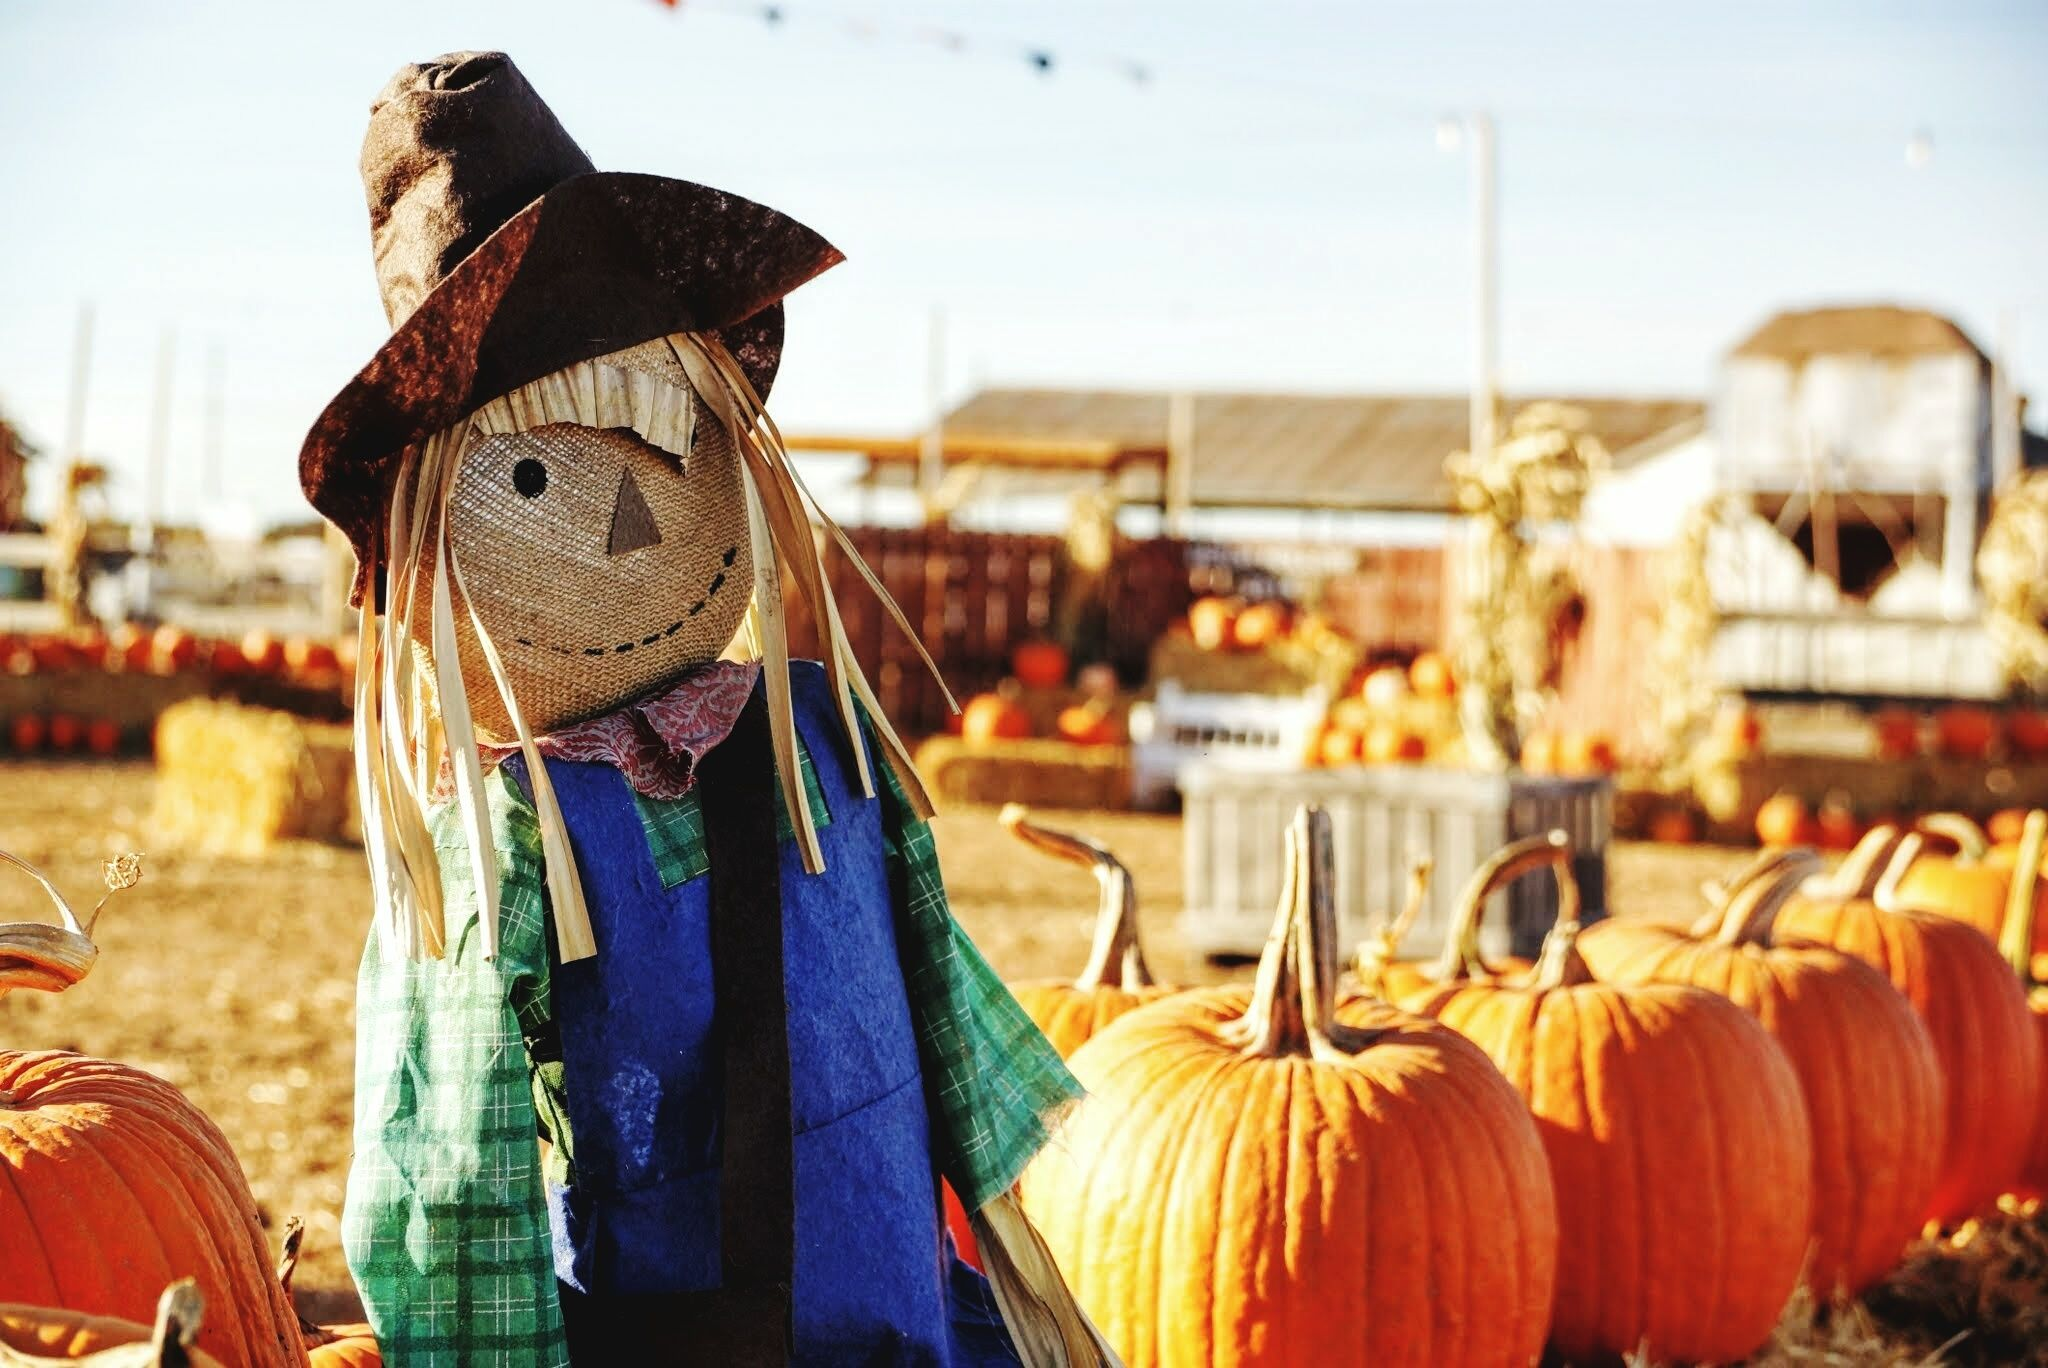 How To Make A Scarecrow 20 Best Diy Crafts